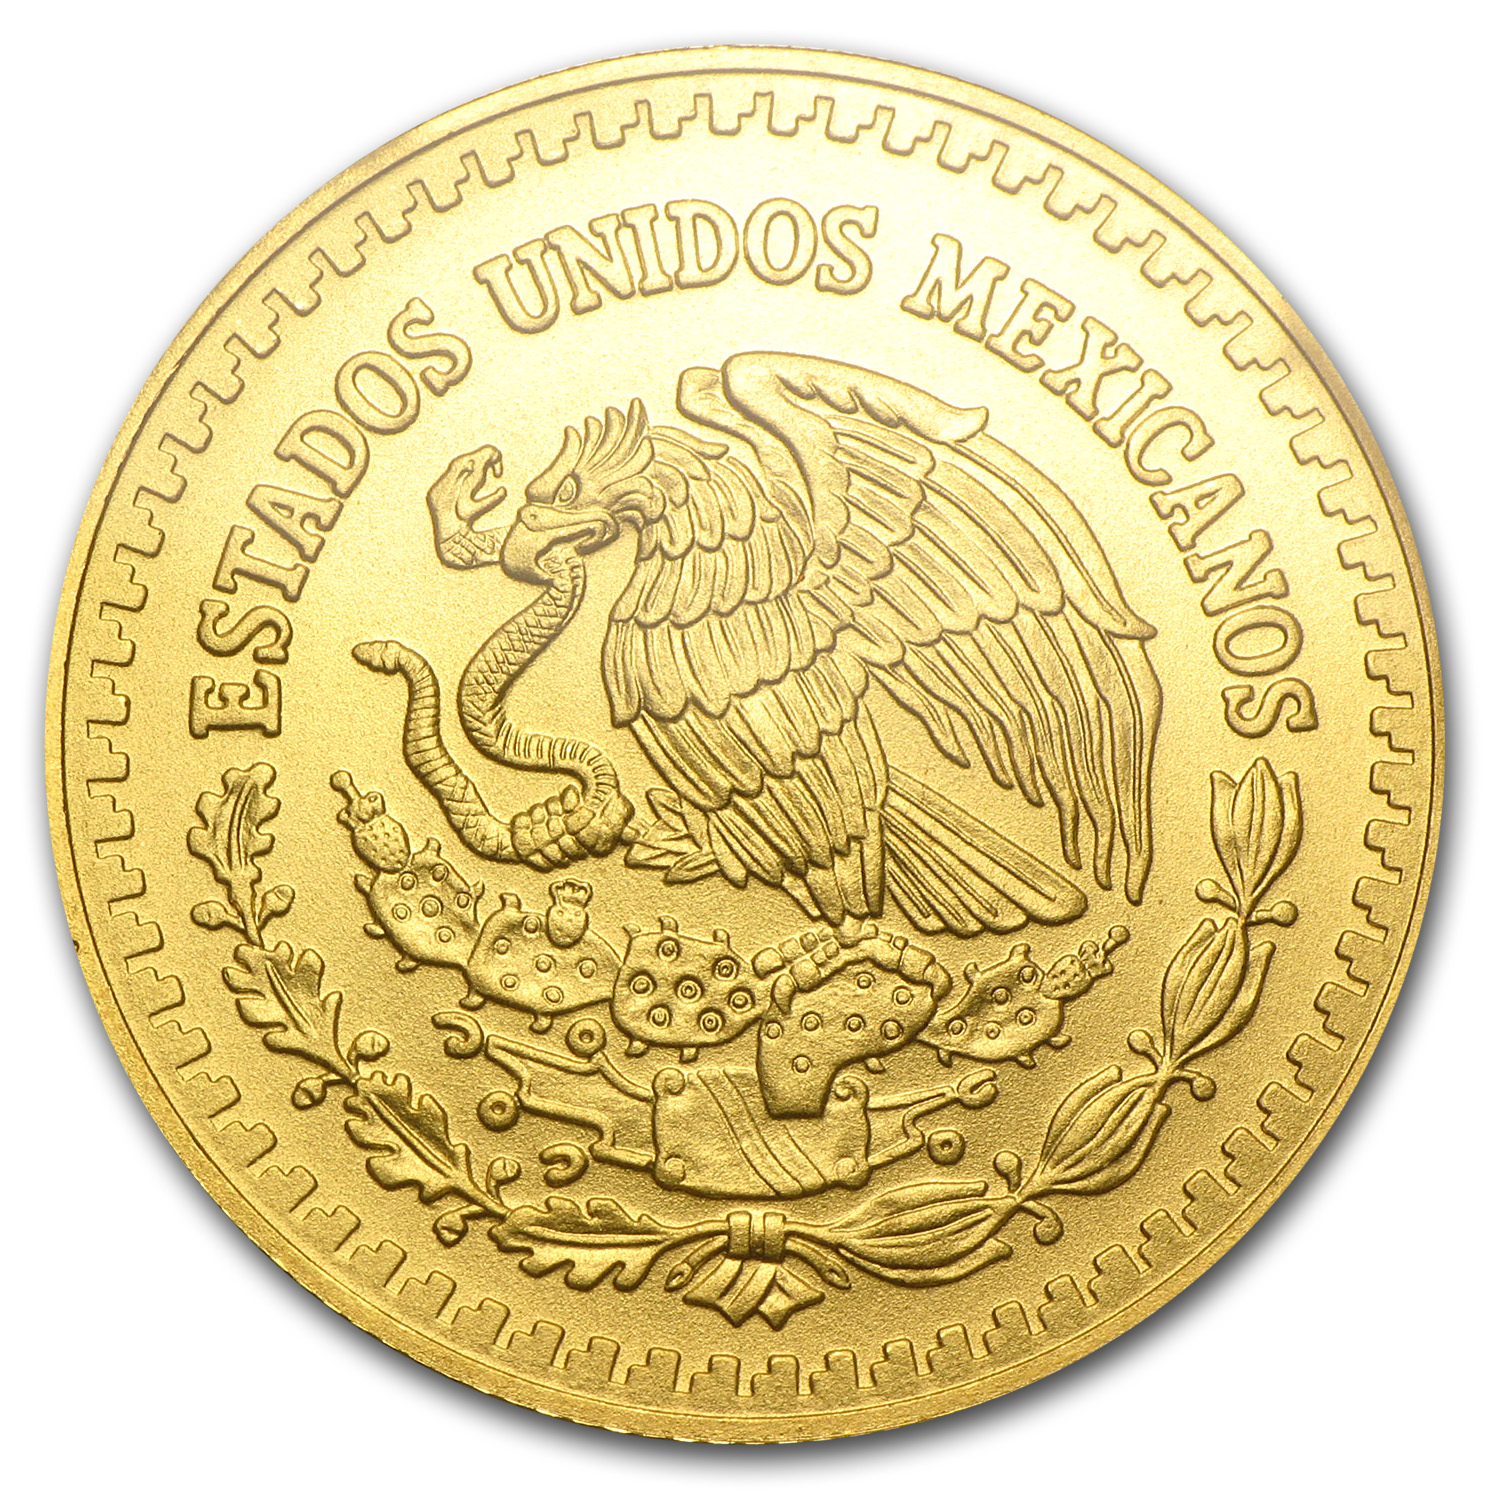 2014 Mexico 1/2 oz Gold Libertad MS-70 PCGS